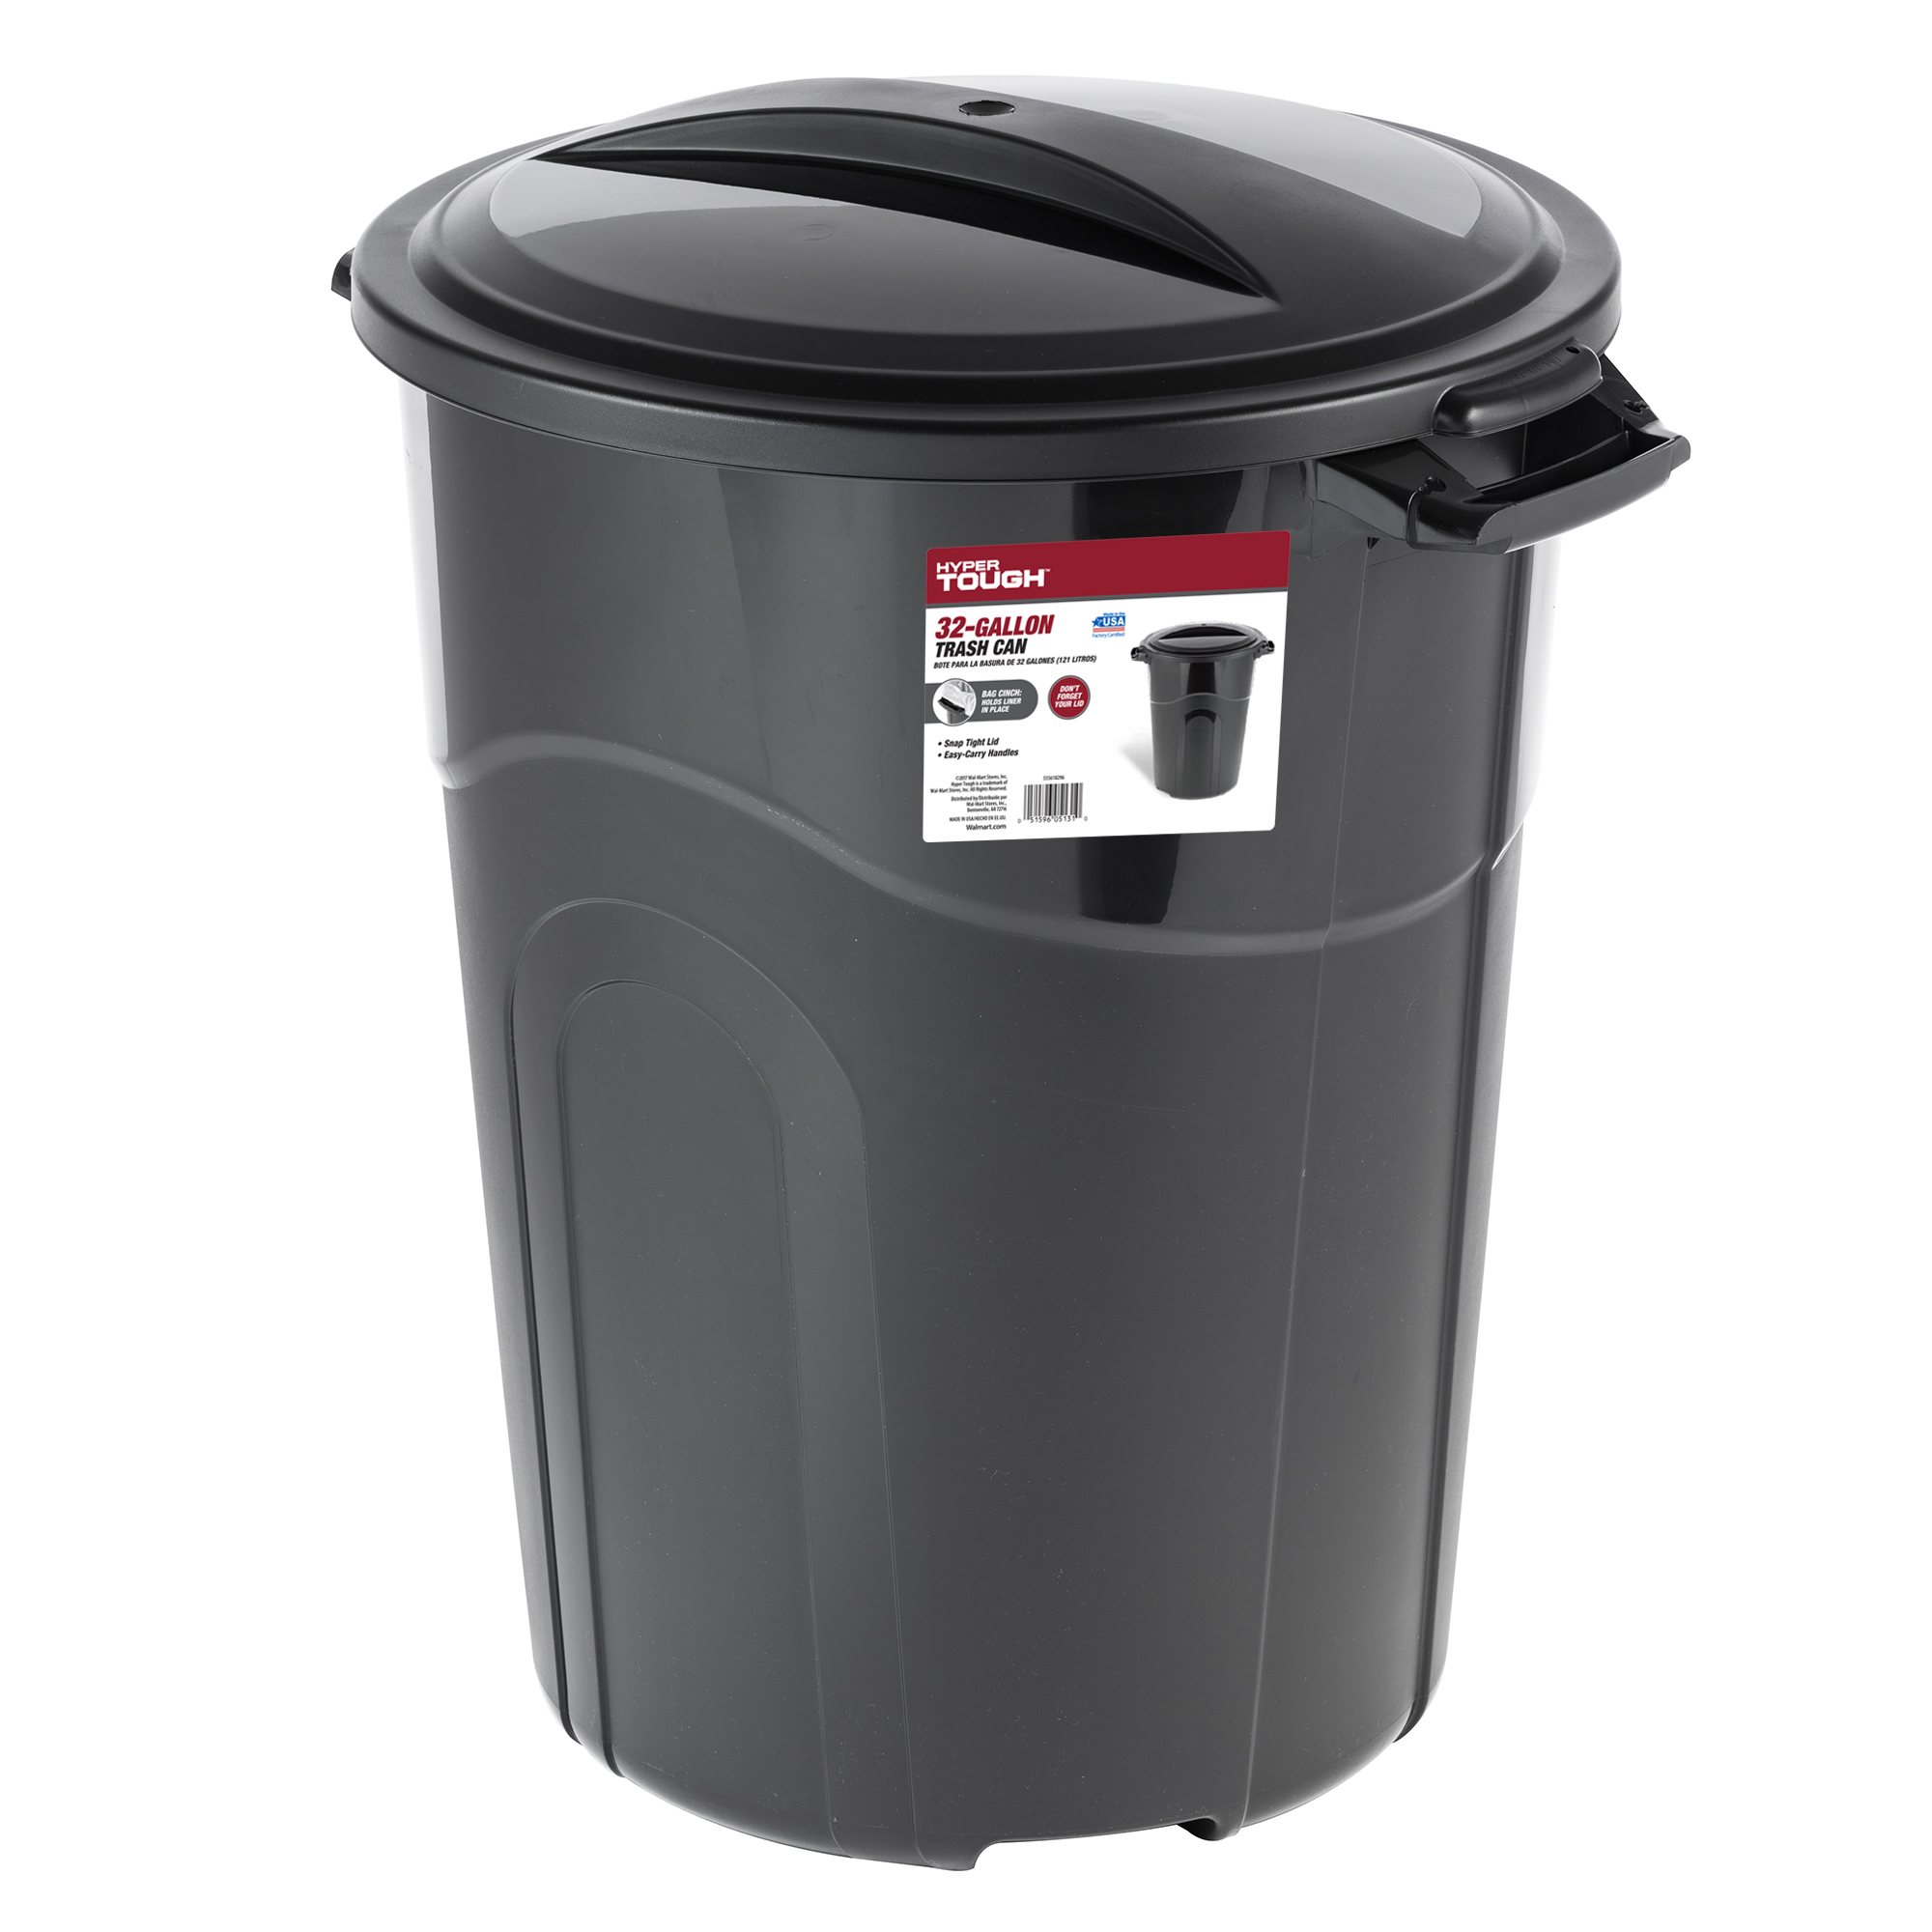 Hyper Tough 32 Gallon Injection Molded Trash Can - Black